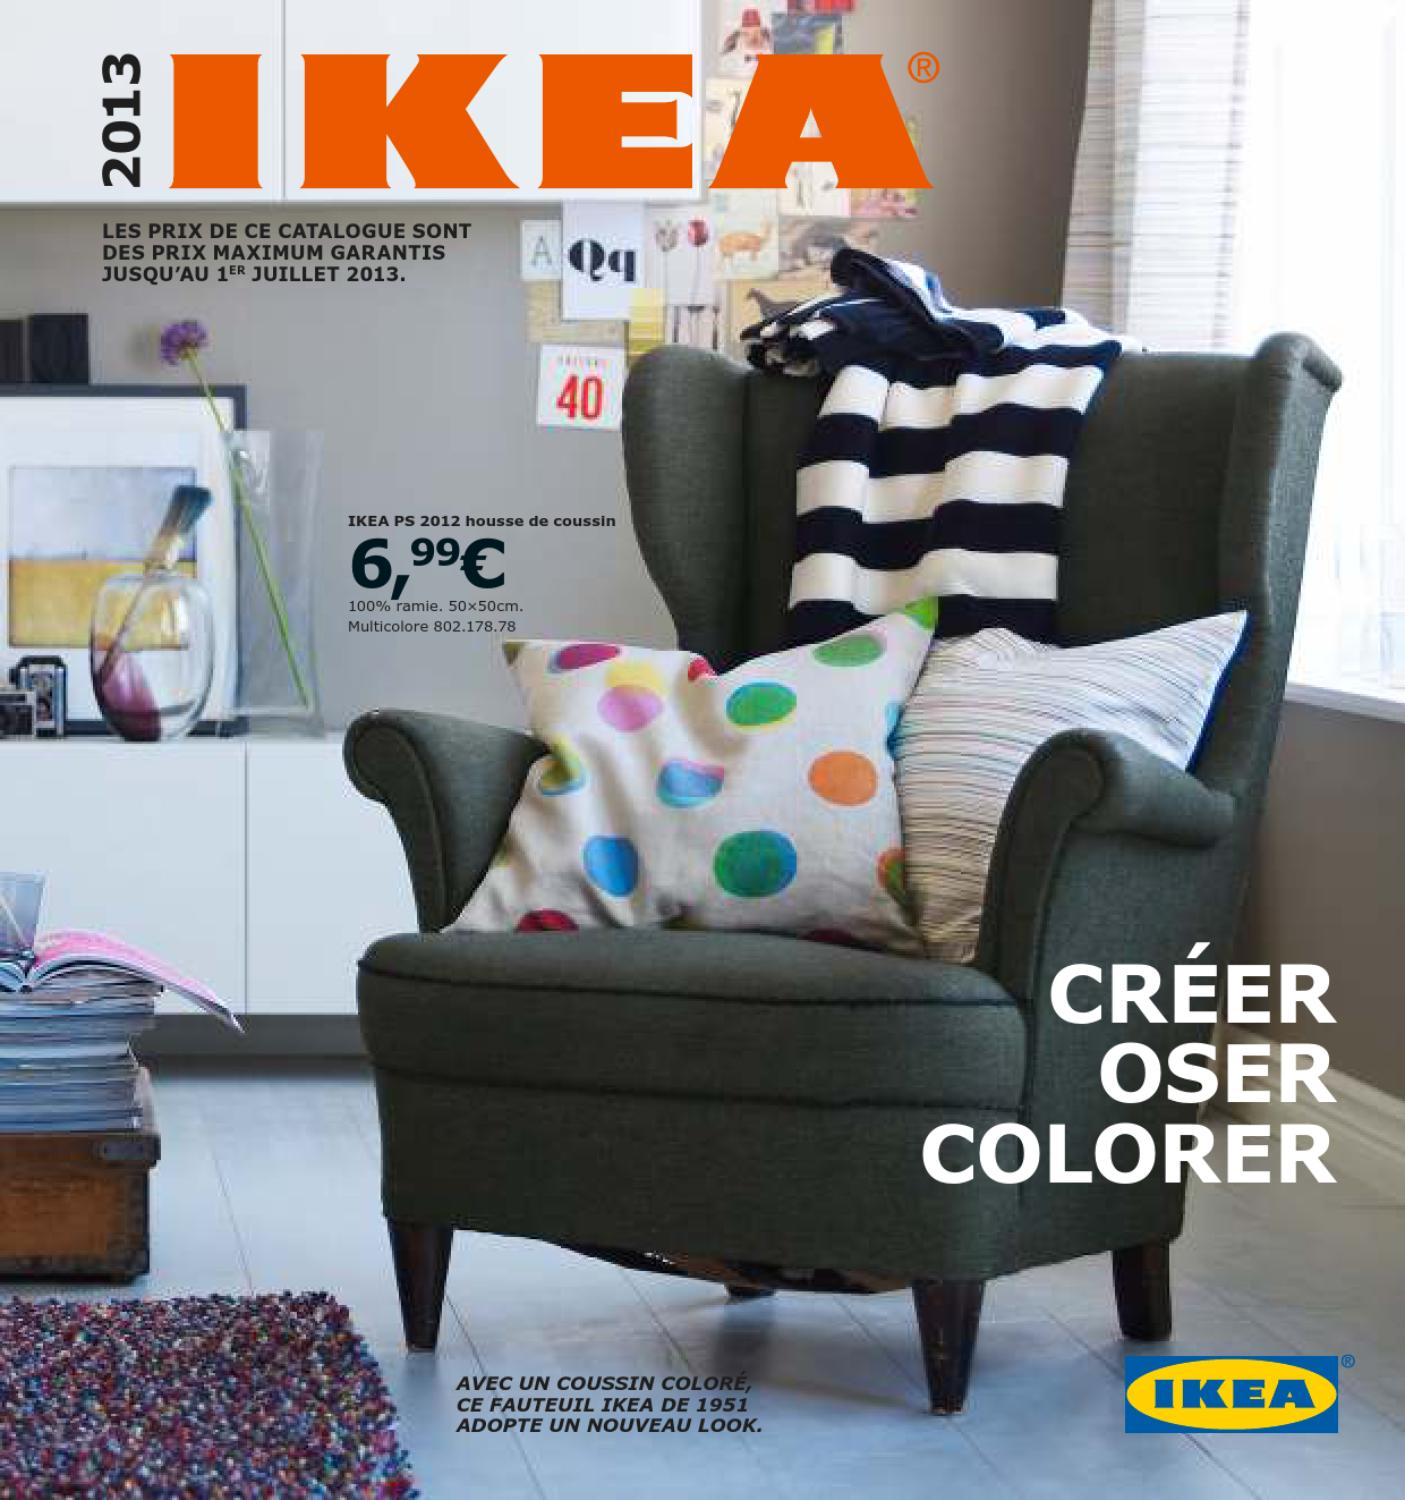 Ikea Grenoble Catalogue Ikea Catalogue France 2013